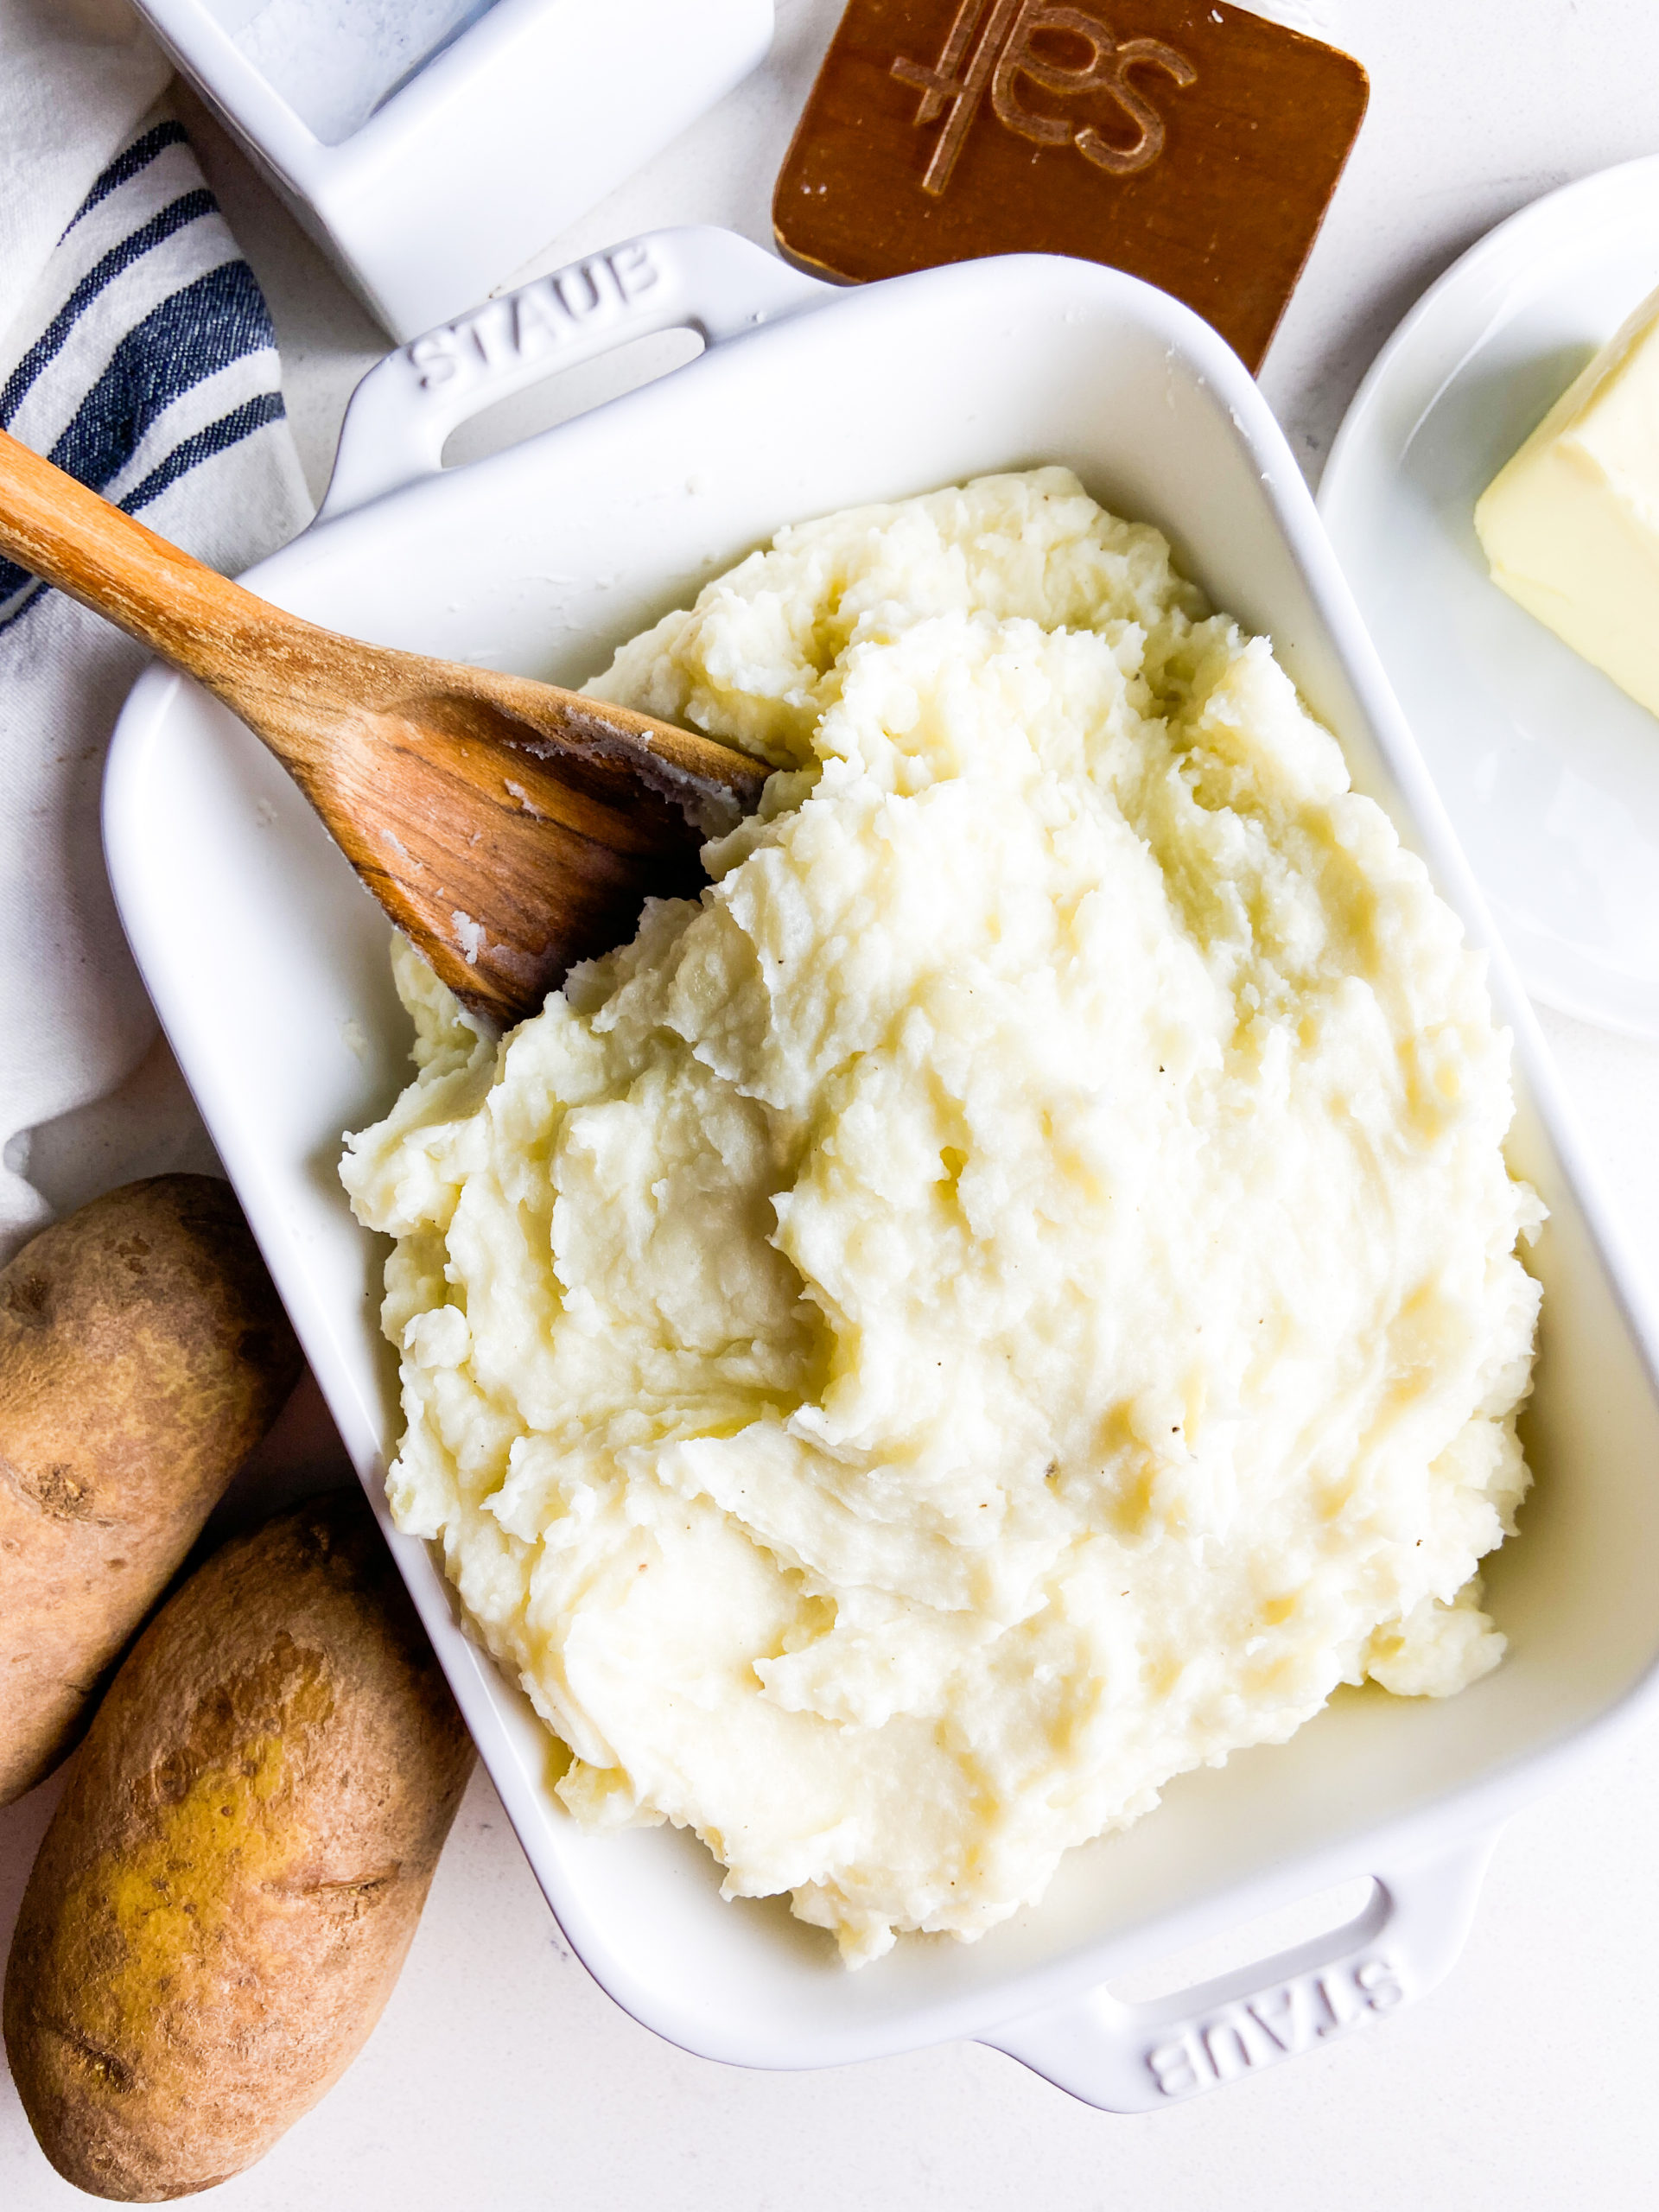 Overhead photo of mashed potatoes in a white dish with wooden spoon.